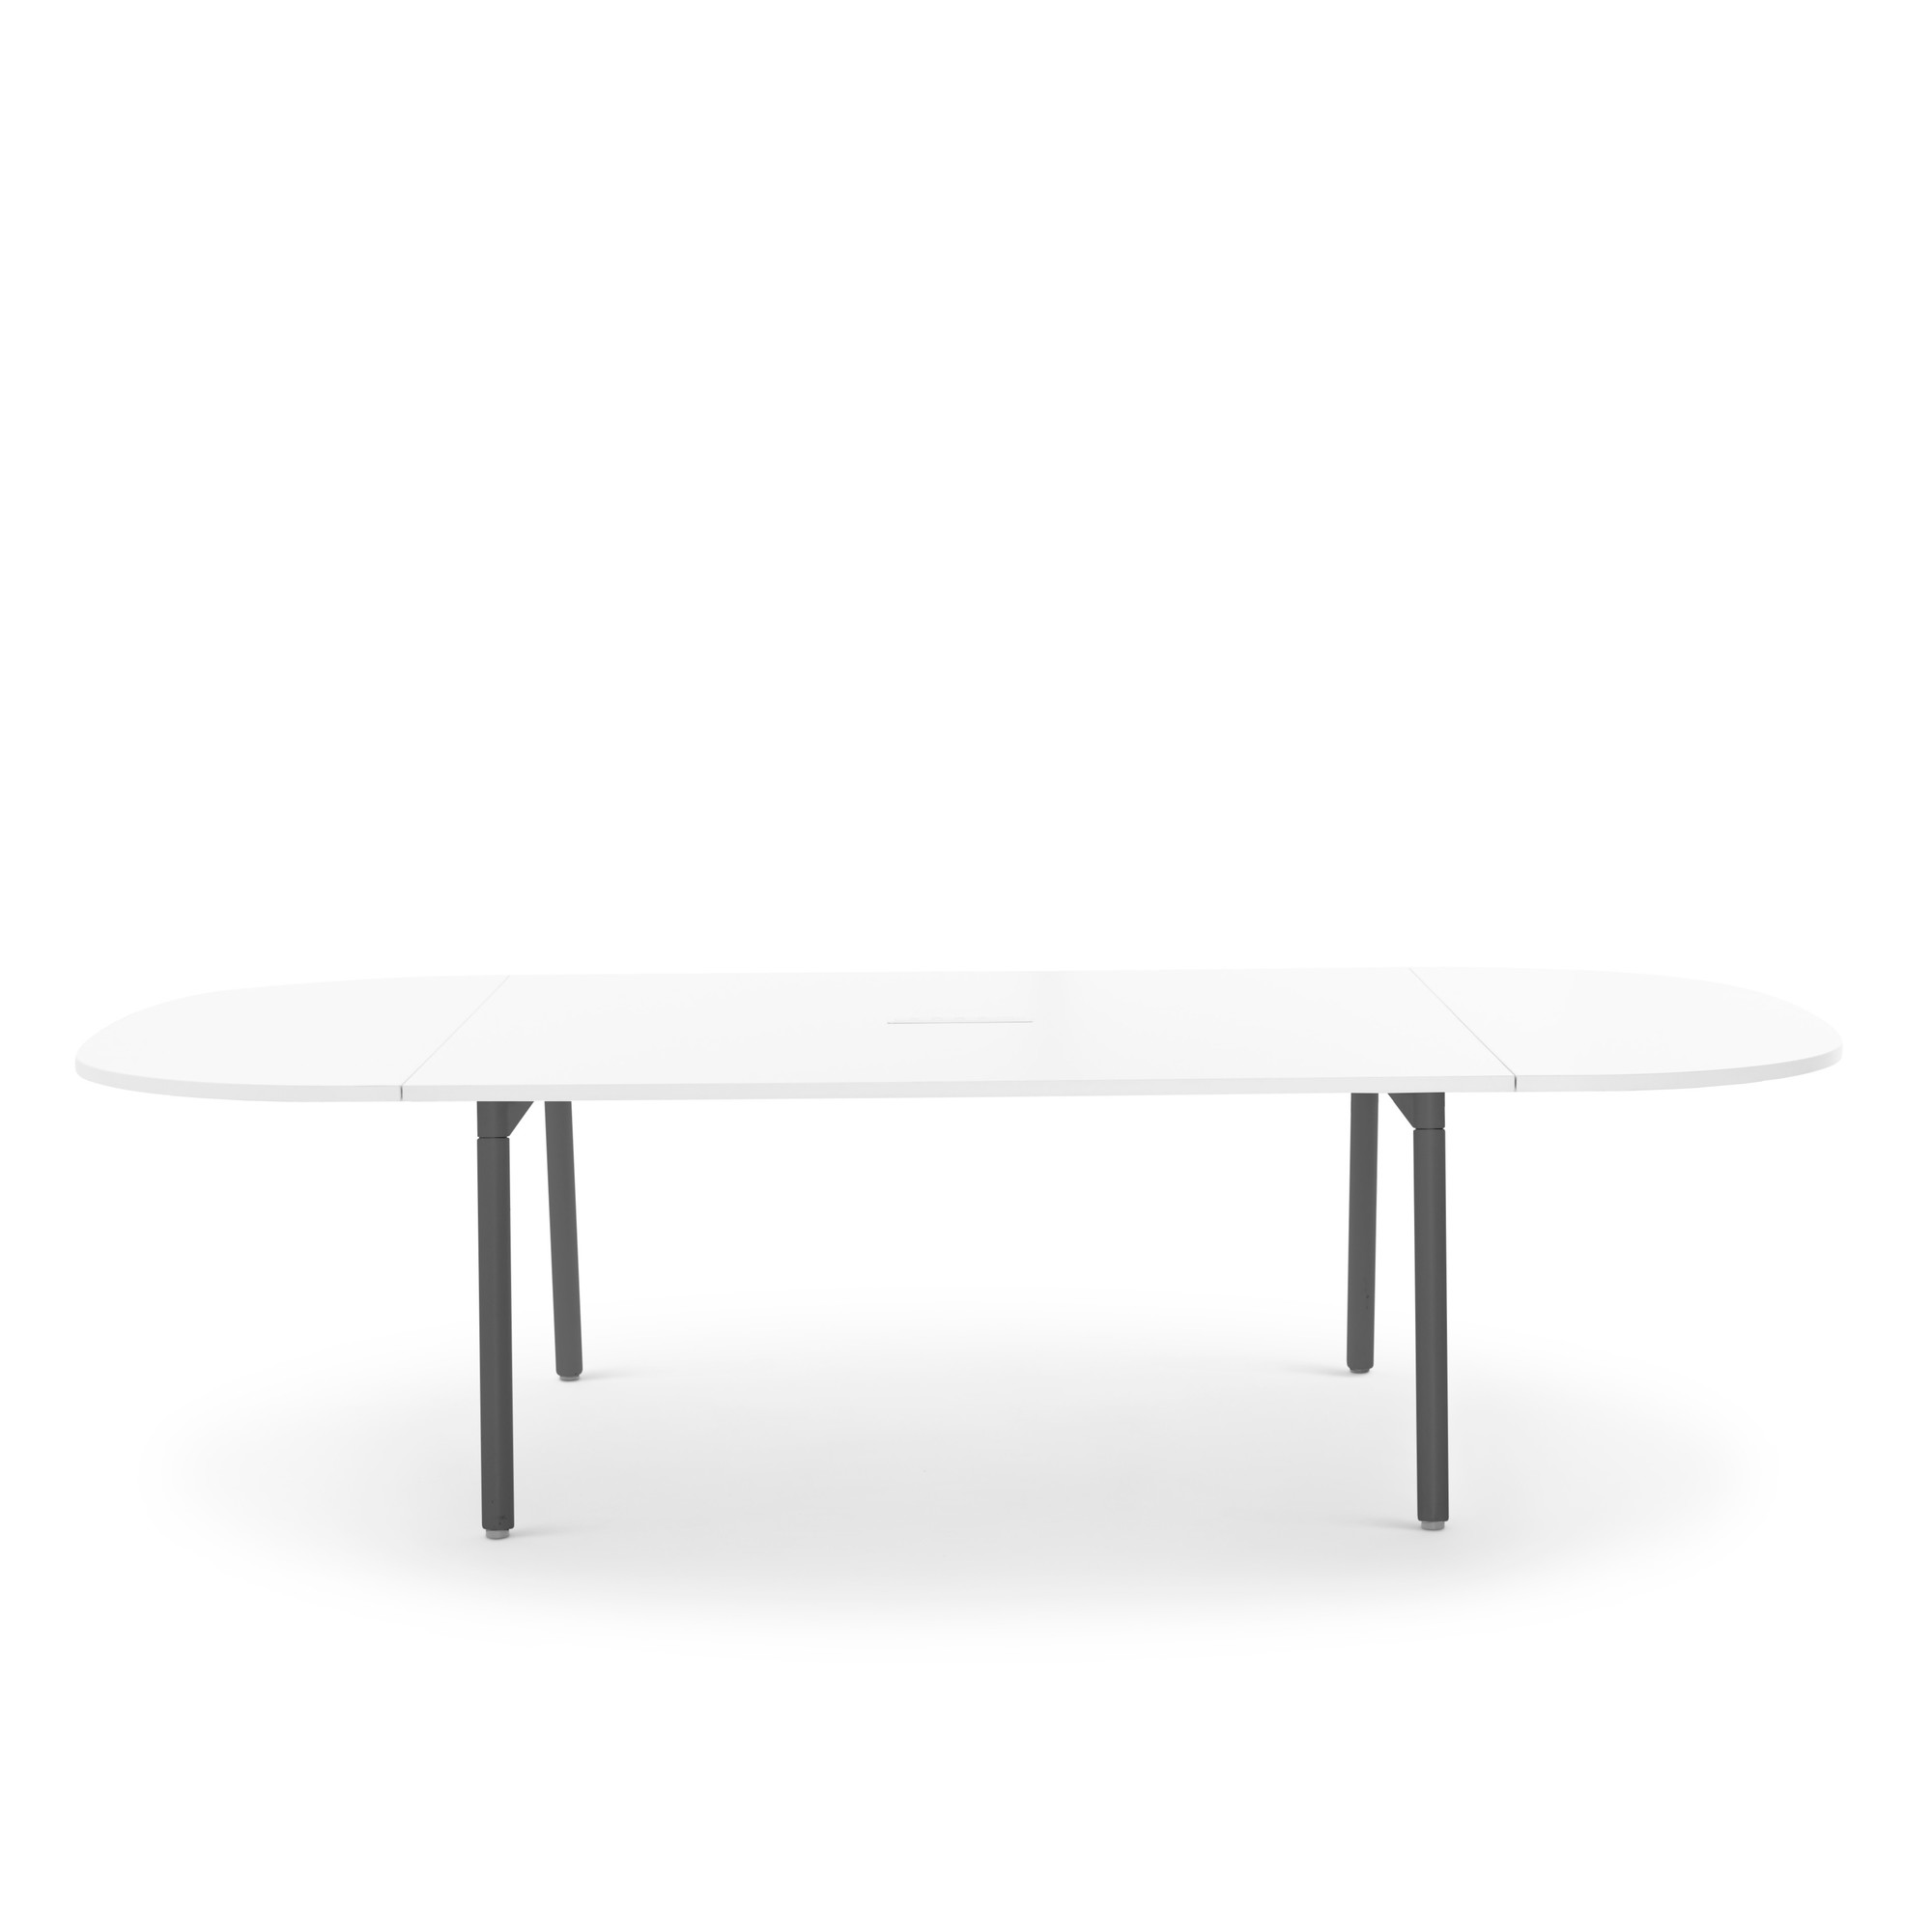 Picture of: Series A Scale Racetrack Conference Table Charcoal Legs Conference Tables Poppin